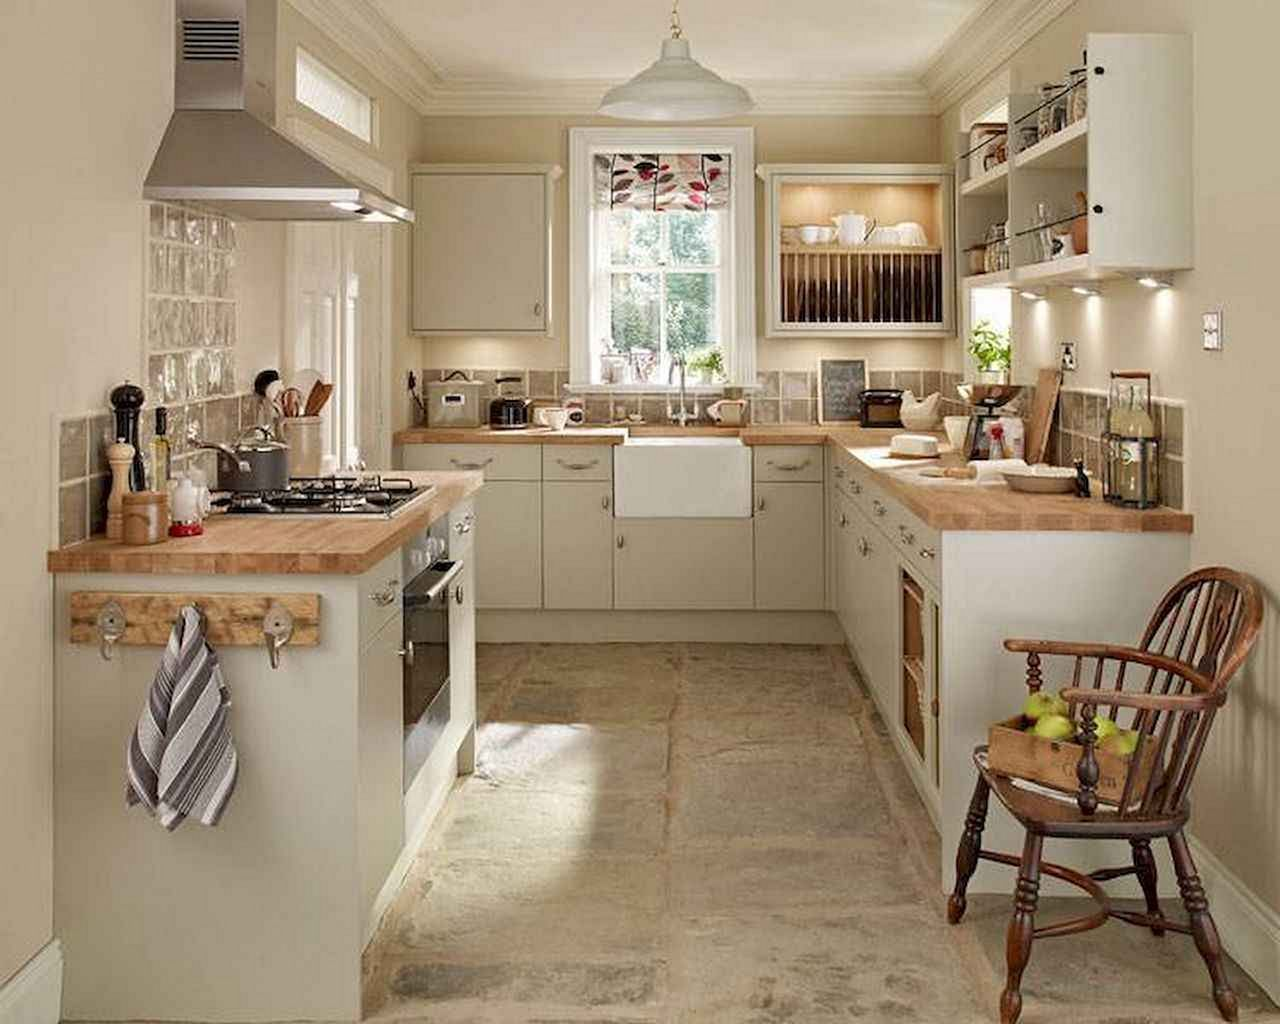 12 Beautiful Simple French Country Kitchen Ideas For Small Space Decor It S Small French Country Kitchen Small Country Kitchens Kitchen Remodel Small